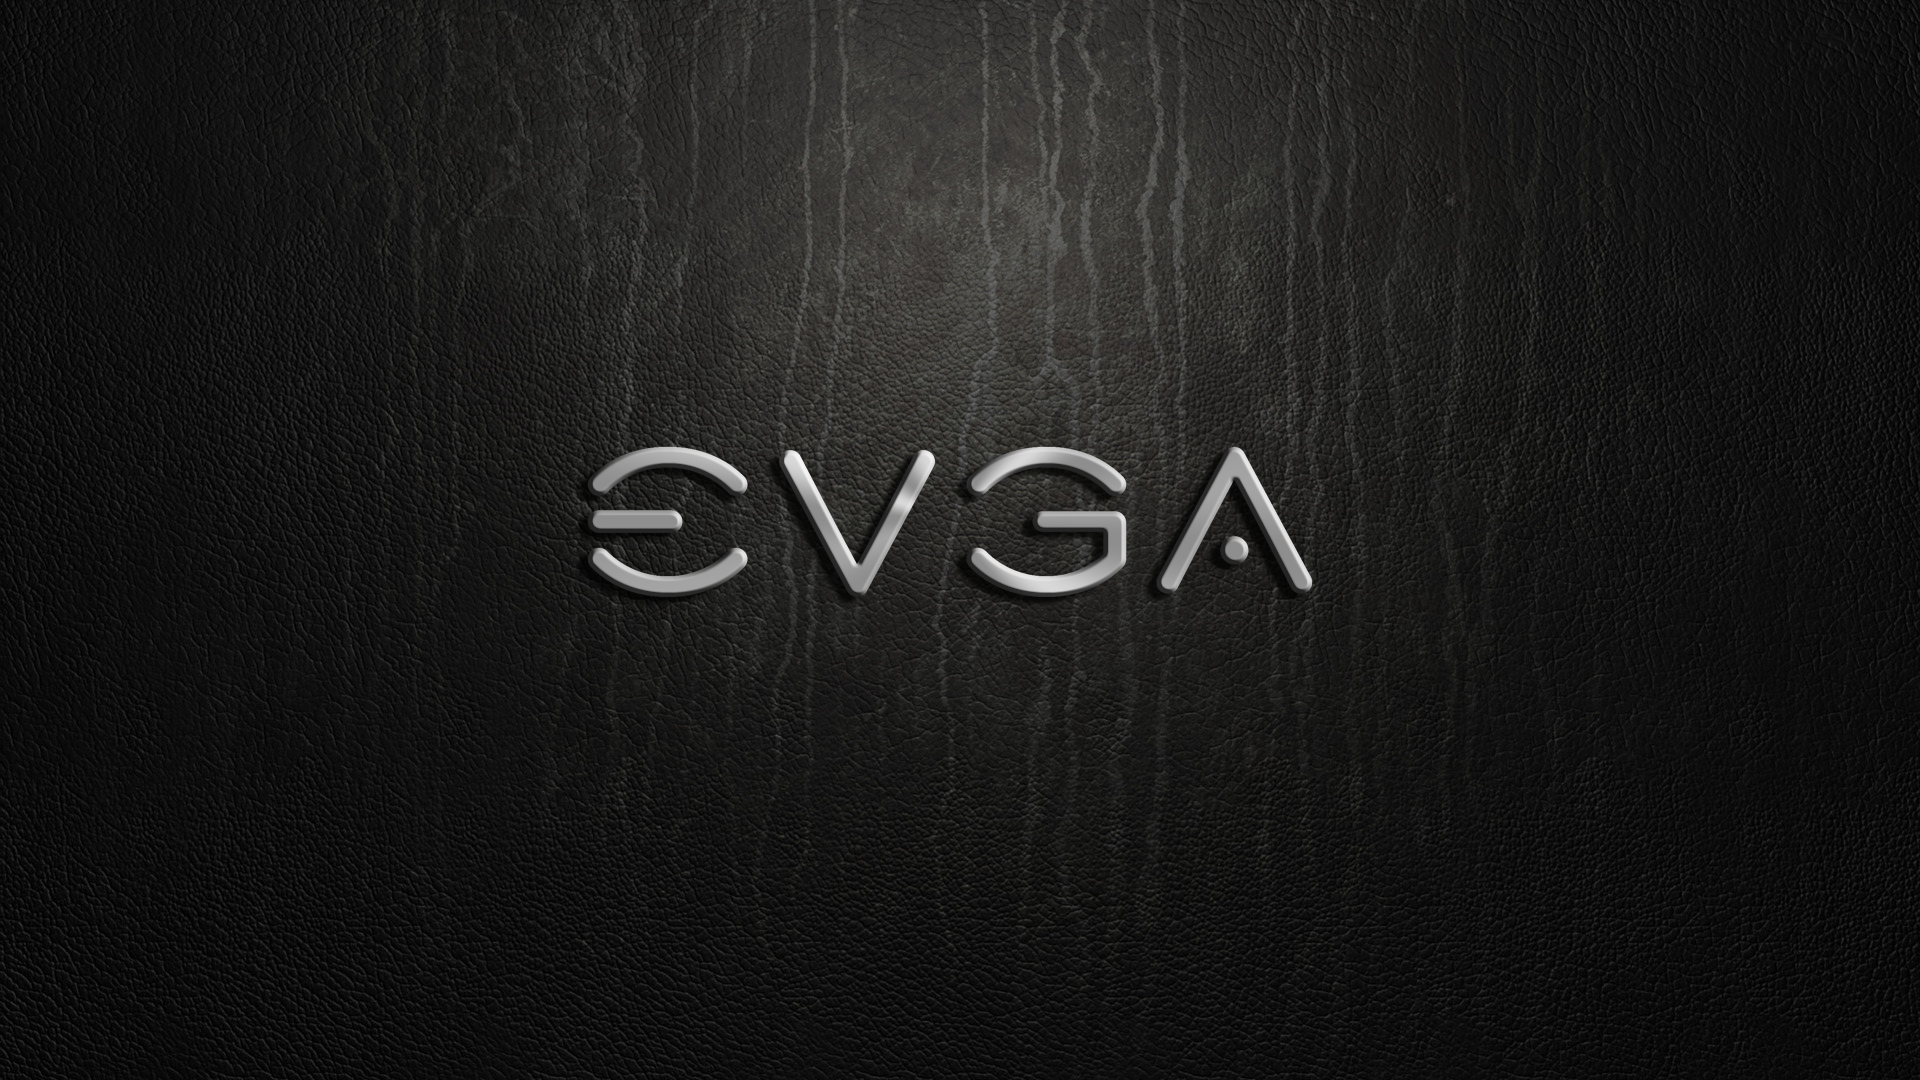 1 EVGA HD Wallpapers | Backgrounds - Wallpaper Abyss